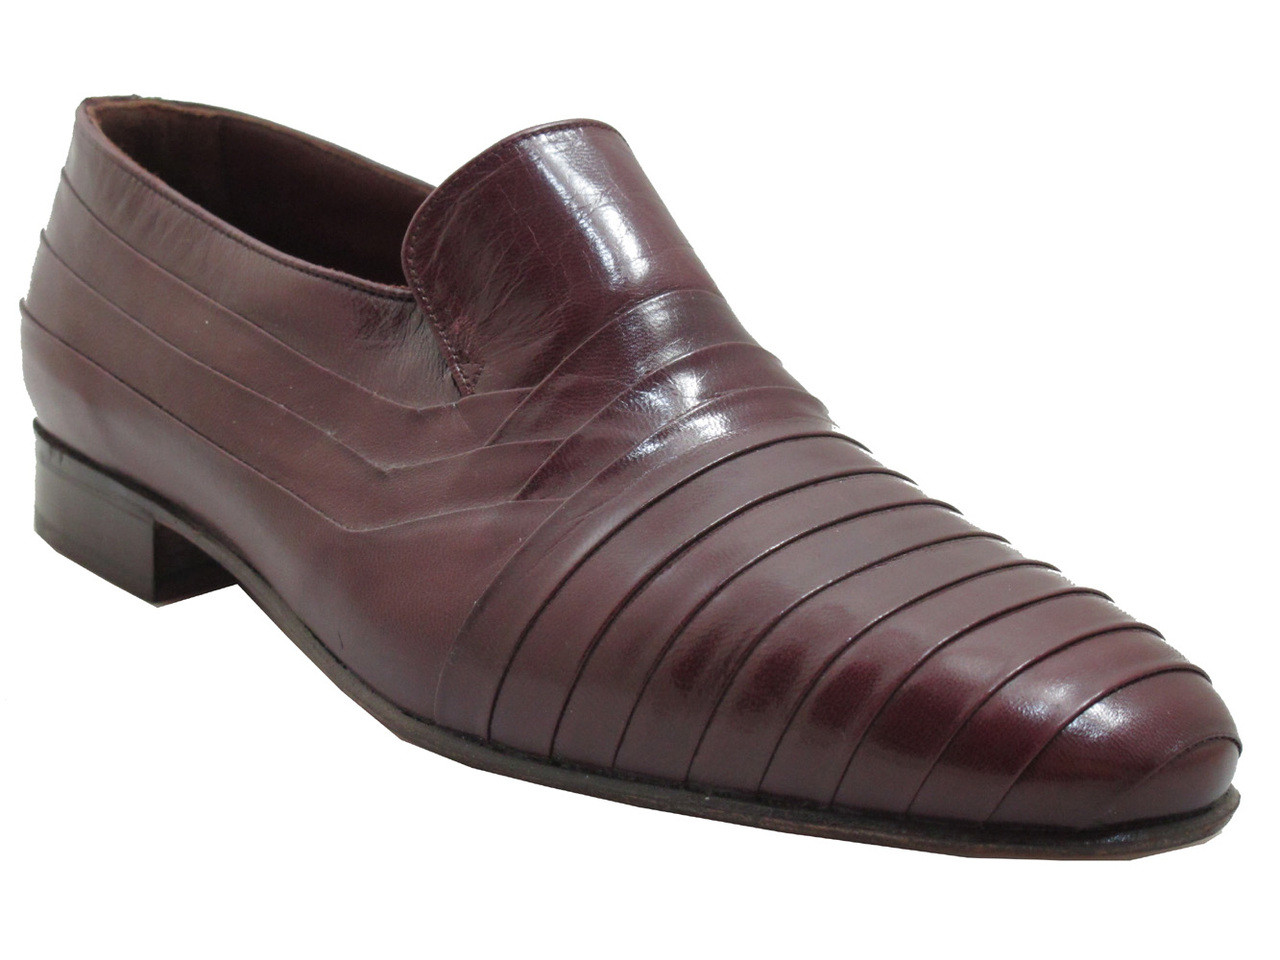 Via Veneto Menu0026#39;s 4325 Italian Leather Pleated Loafers In Bordow With Edgy Design